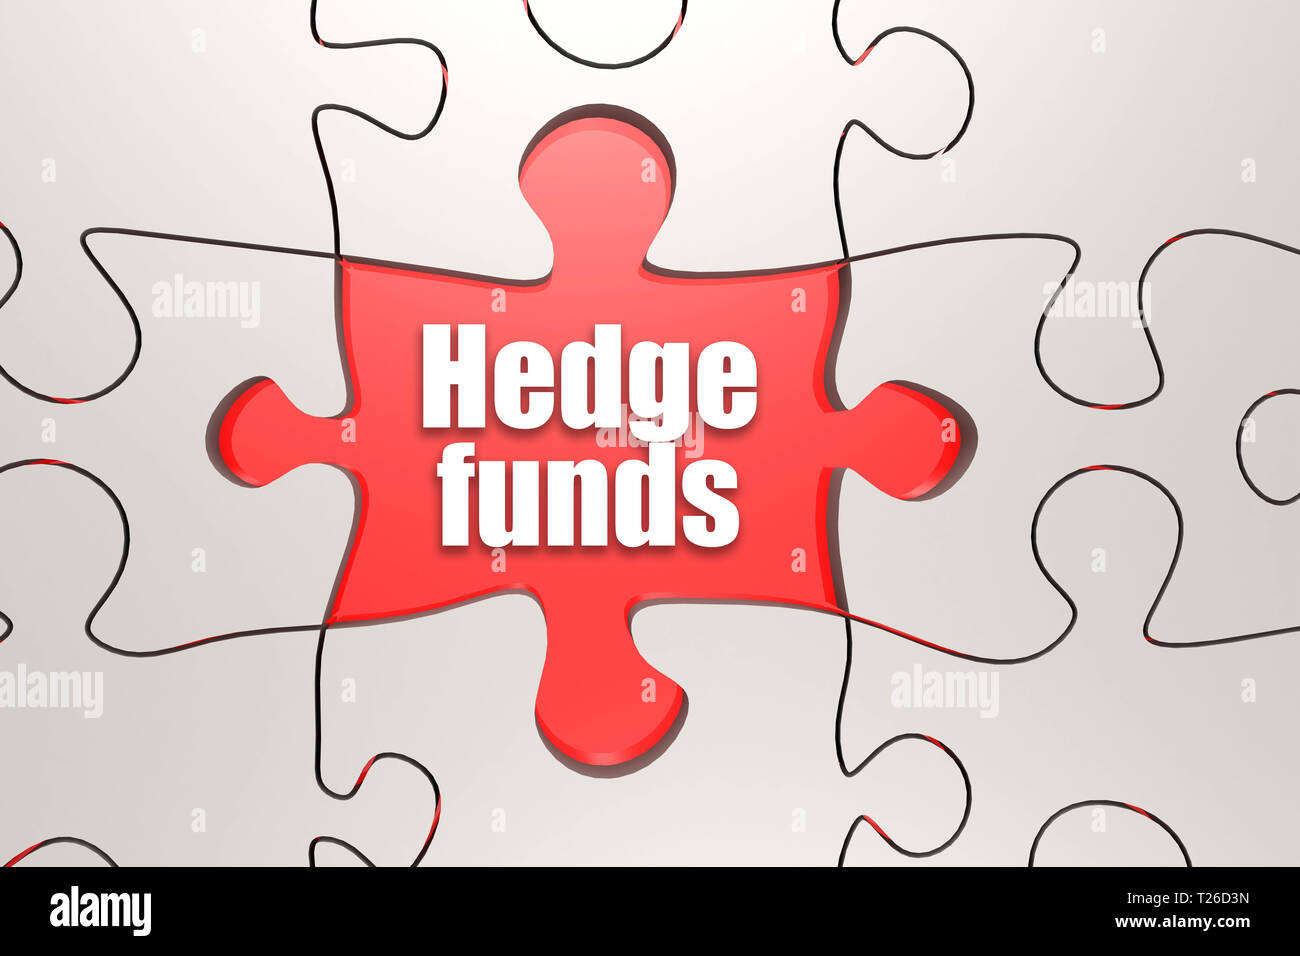 Hedge funds word on jigsaw puzzle, 3D rendering - Stock Image